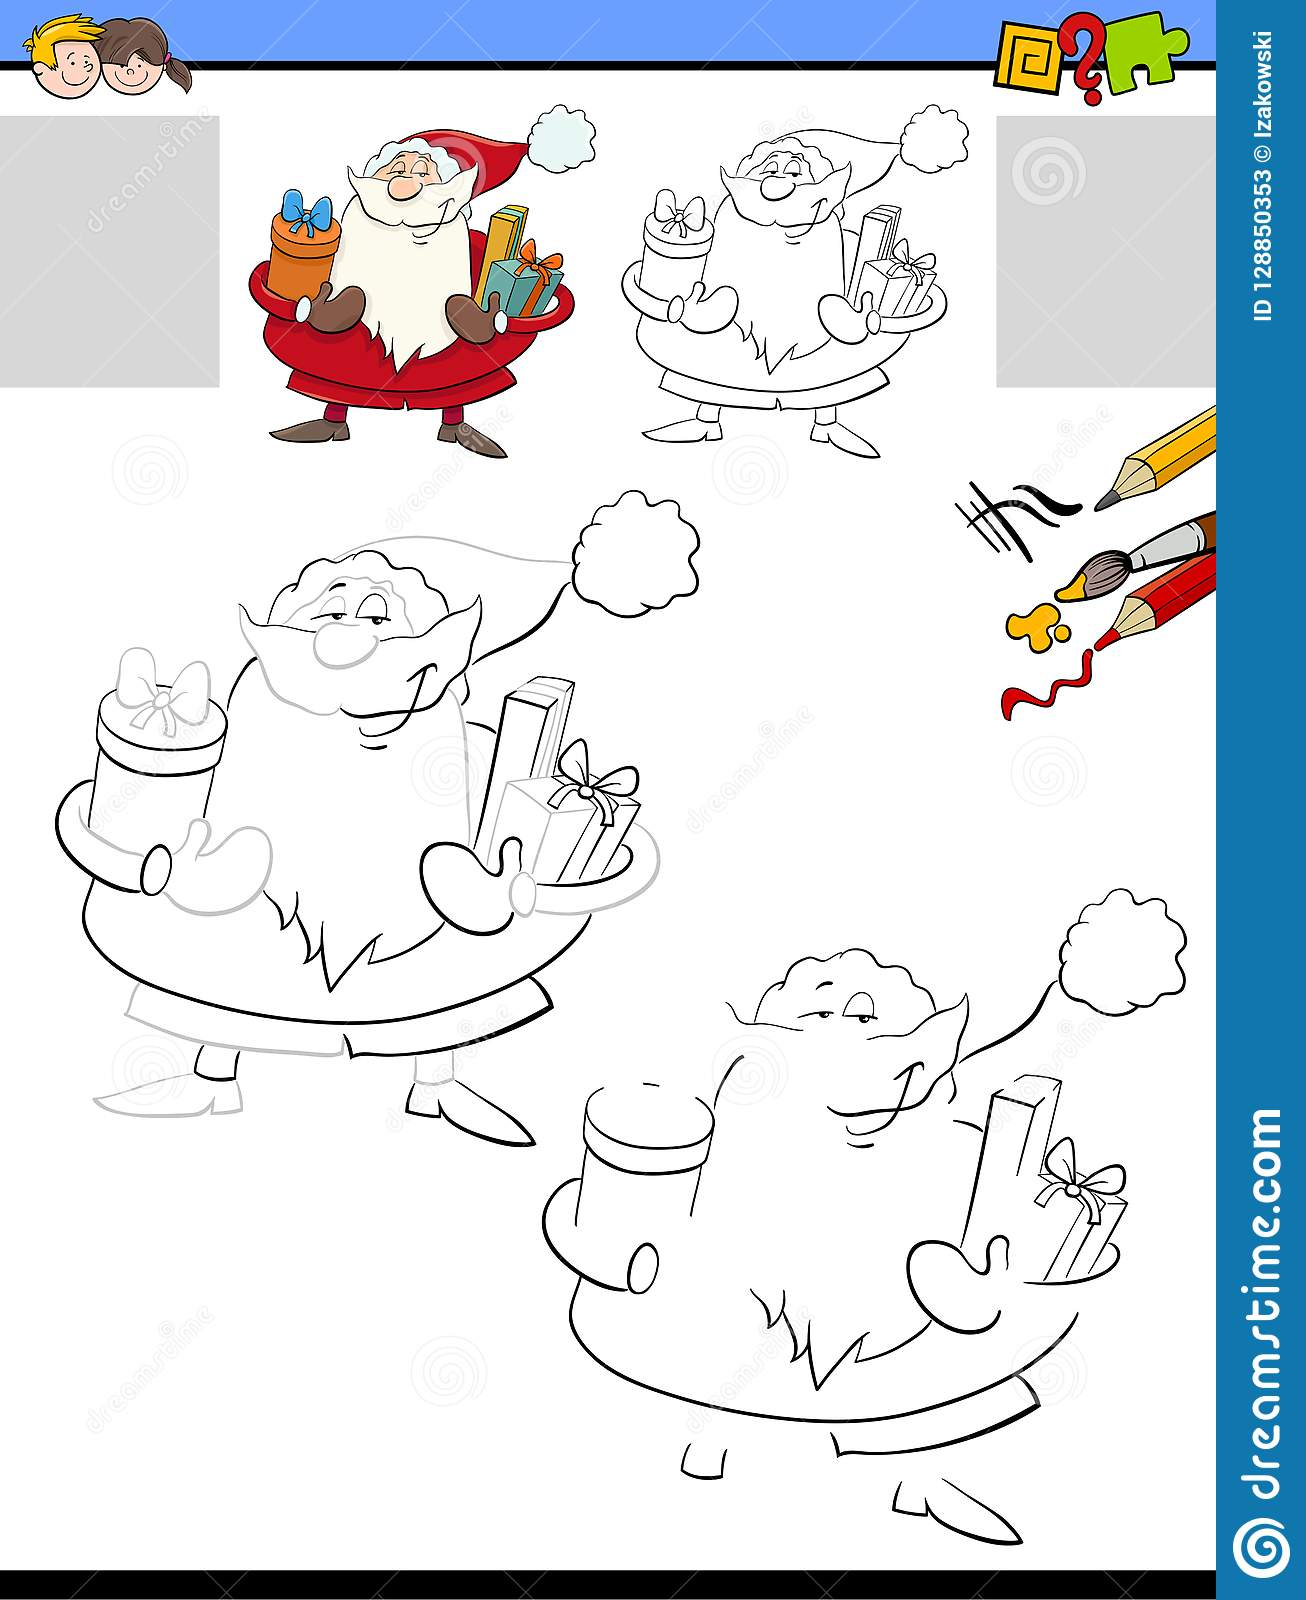 Drawing And Coloring Worksheet With Santa Claus Stock